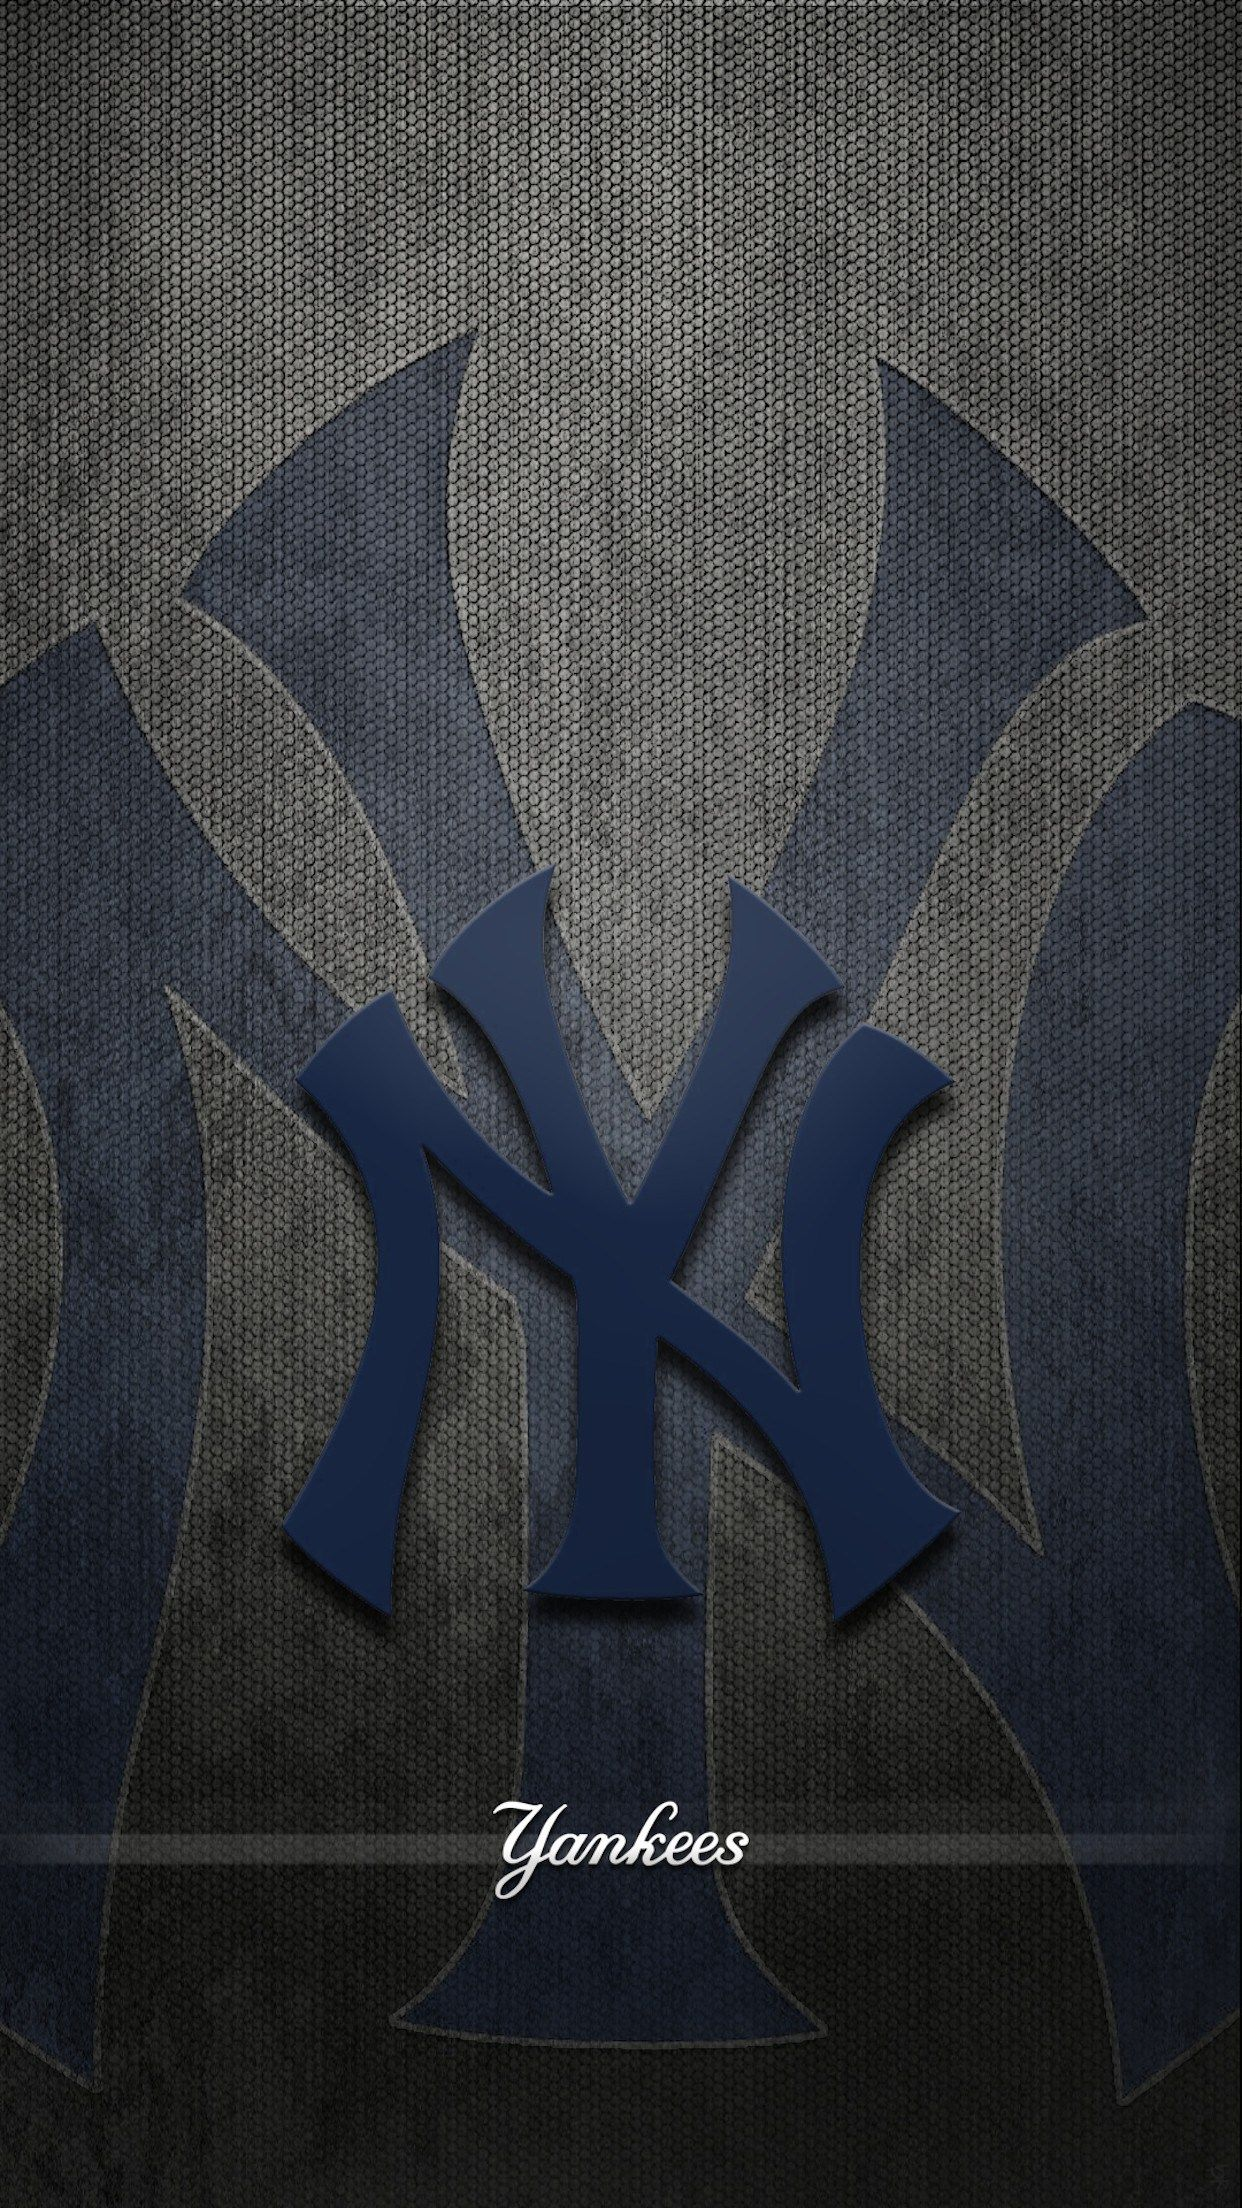 1242x2208 Beautiful New York Yankees Wallpaper iPhone | Art & Design Ideas ...